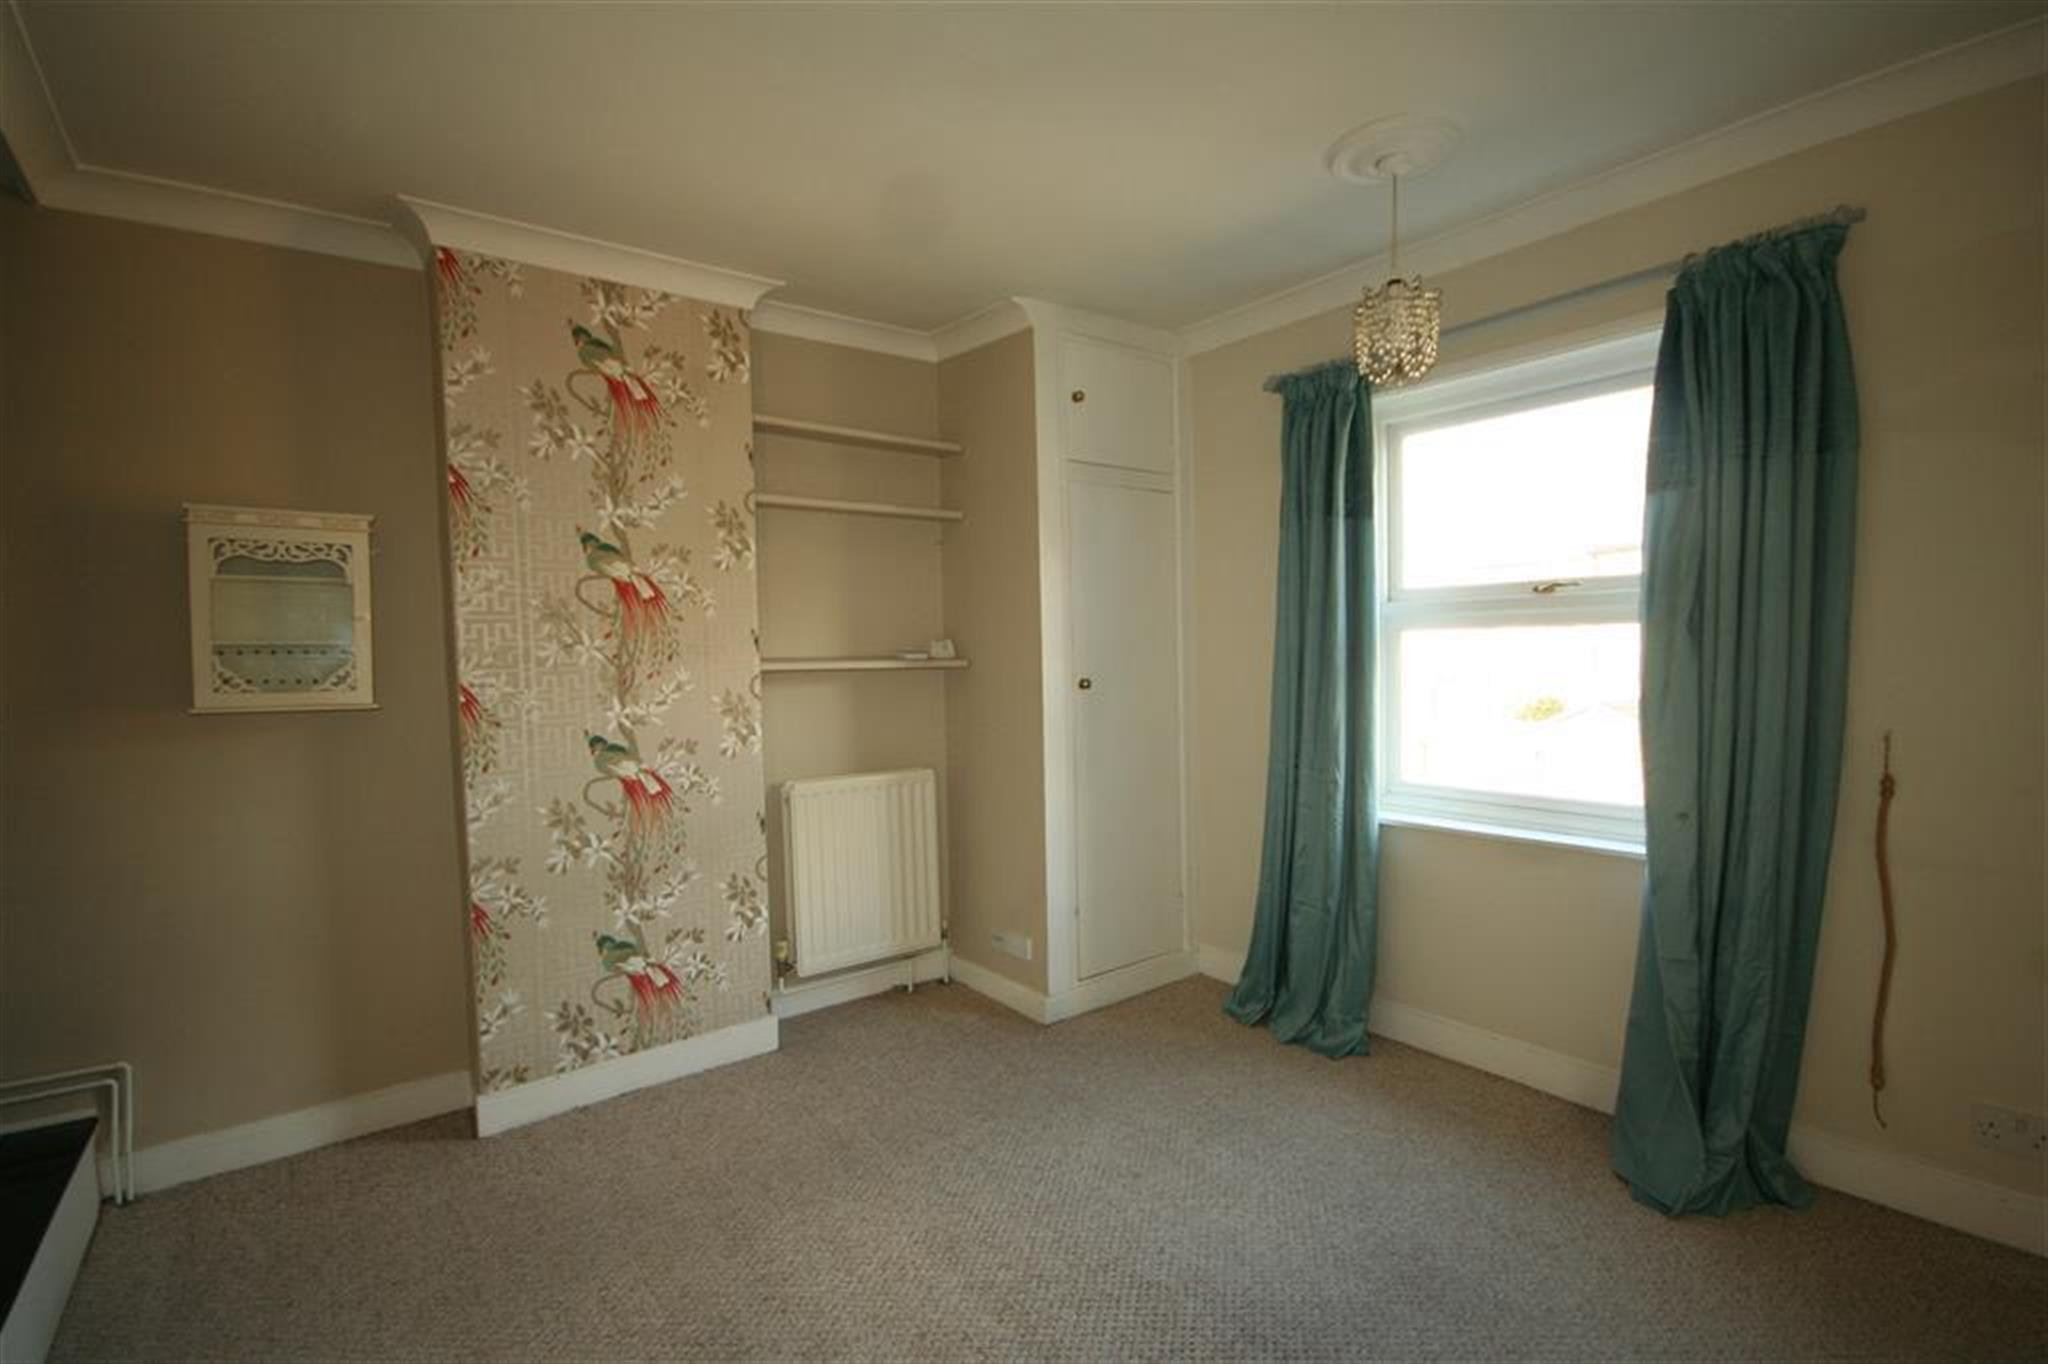 2 Bedroom House To Rent Coalville Cottages Trafalgar